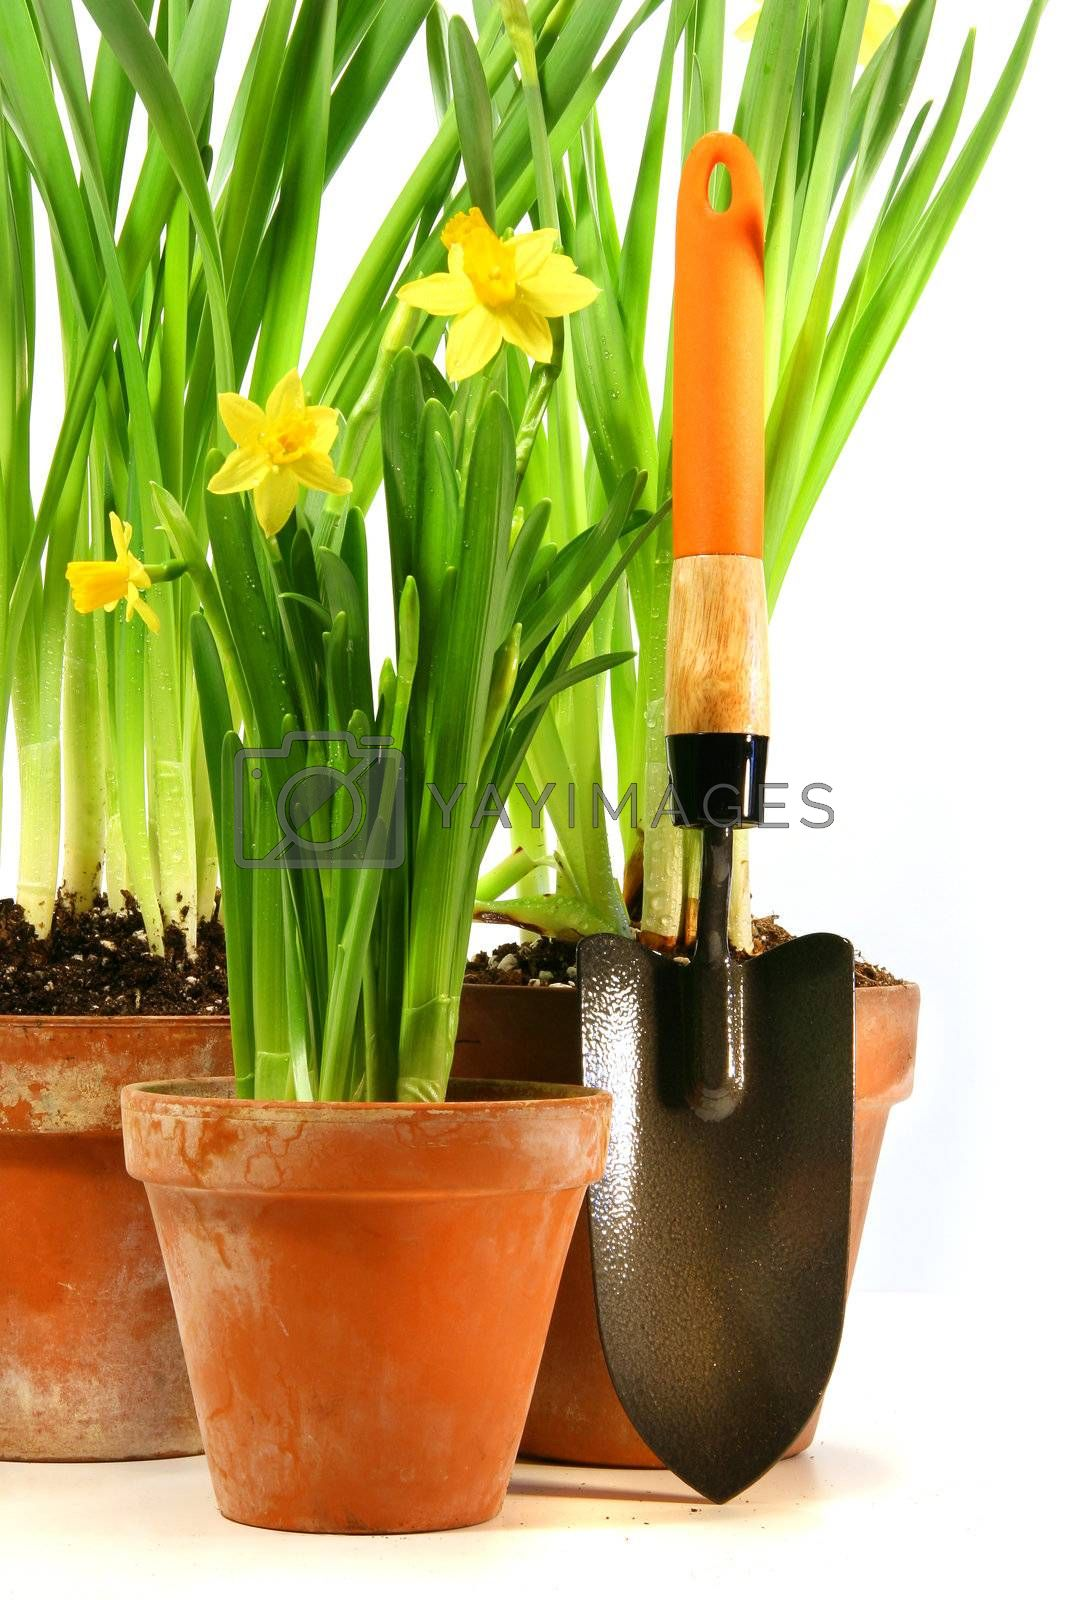 Pots of daffodils with garden shovel on white background